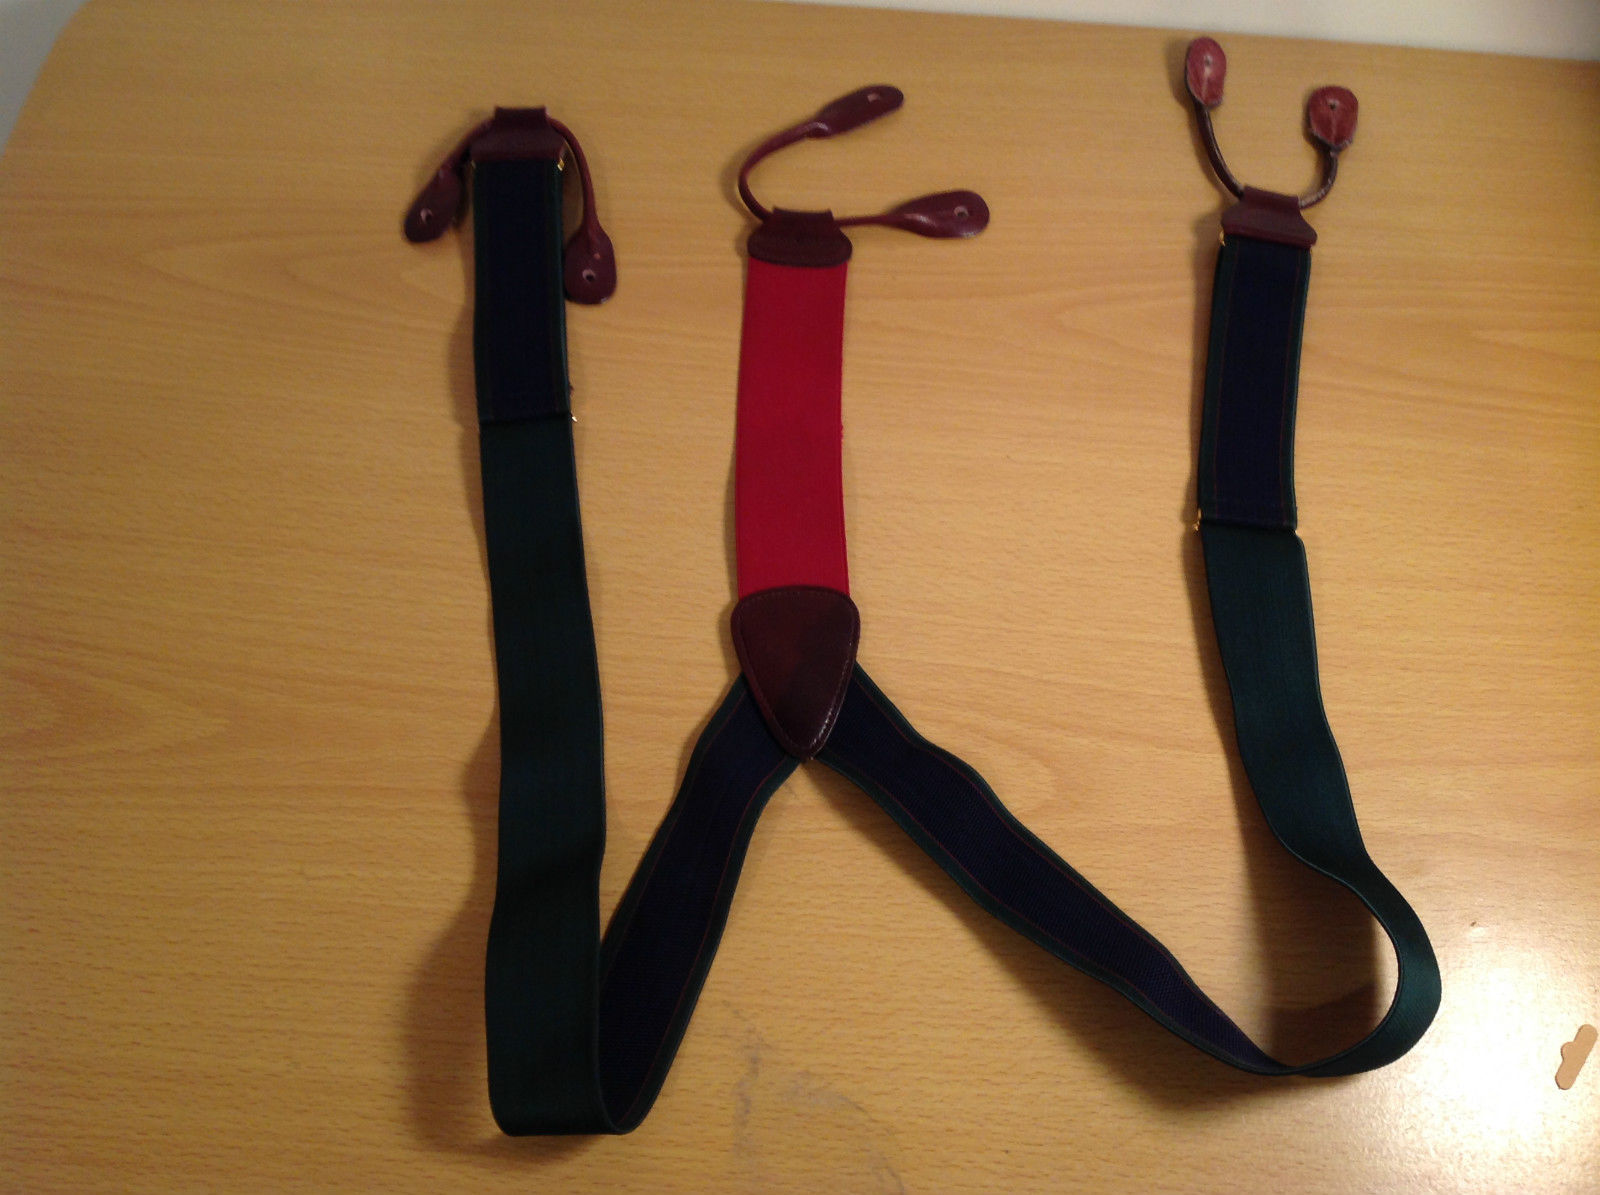 Green Blue Red Trafalgar Stretchy Suspenders Leather Ends Adjustable